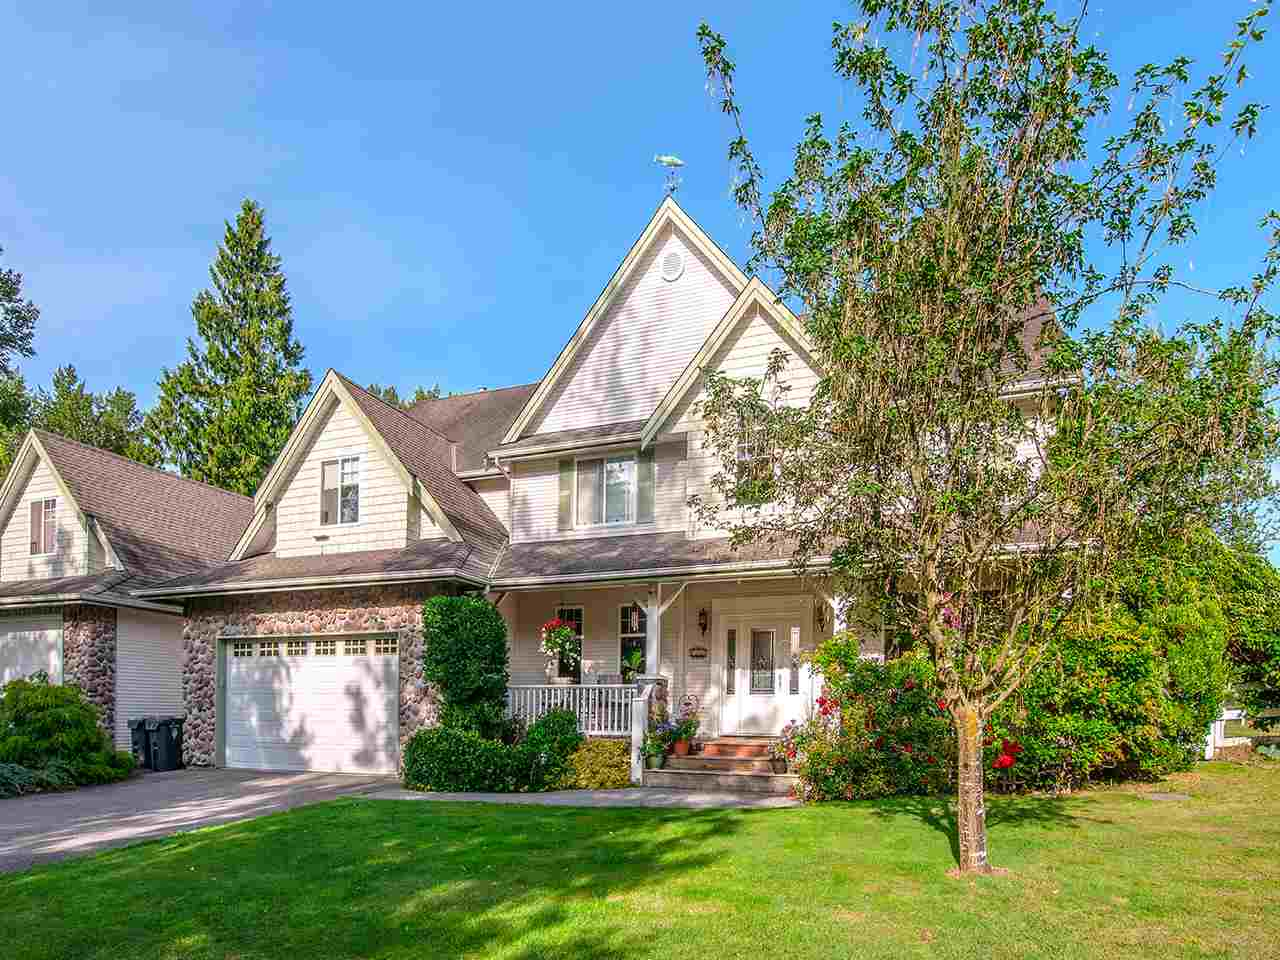 2552 207 STREET - Brookswood Langley House with Acreage for sale, 6 Bedrooms (R2527015) - #3